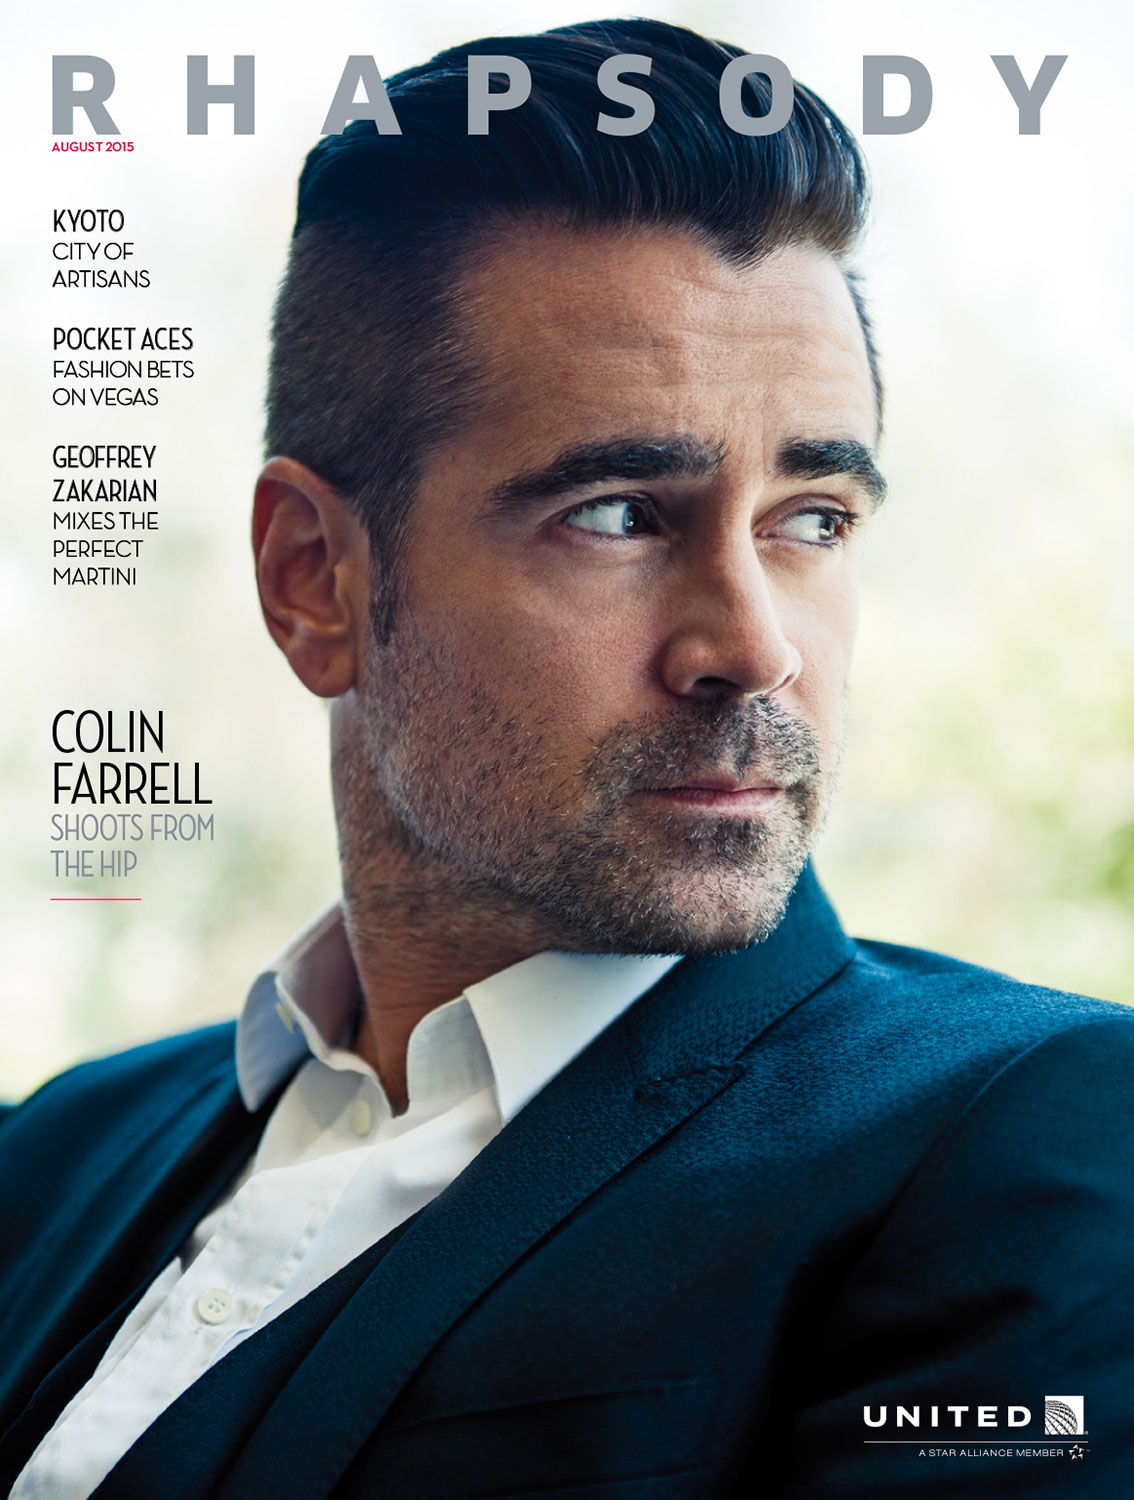 Michael Muller photographs actor Colin Farrell for Rhapsody ...